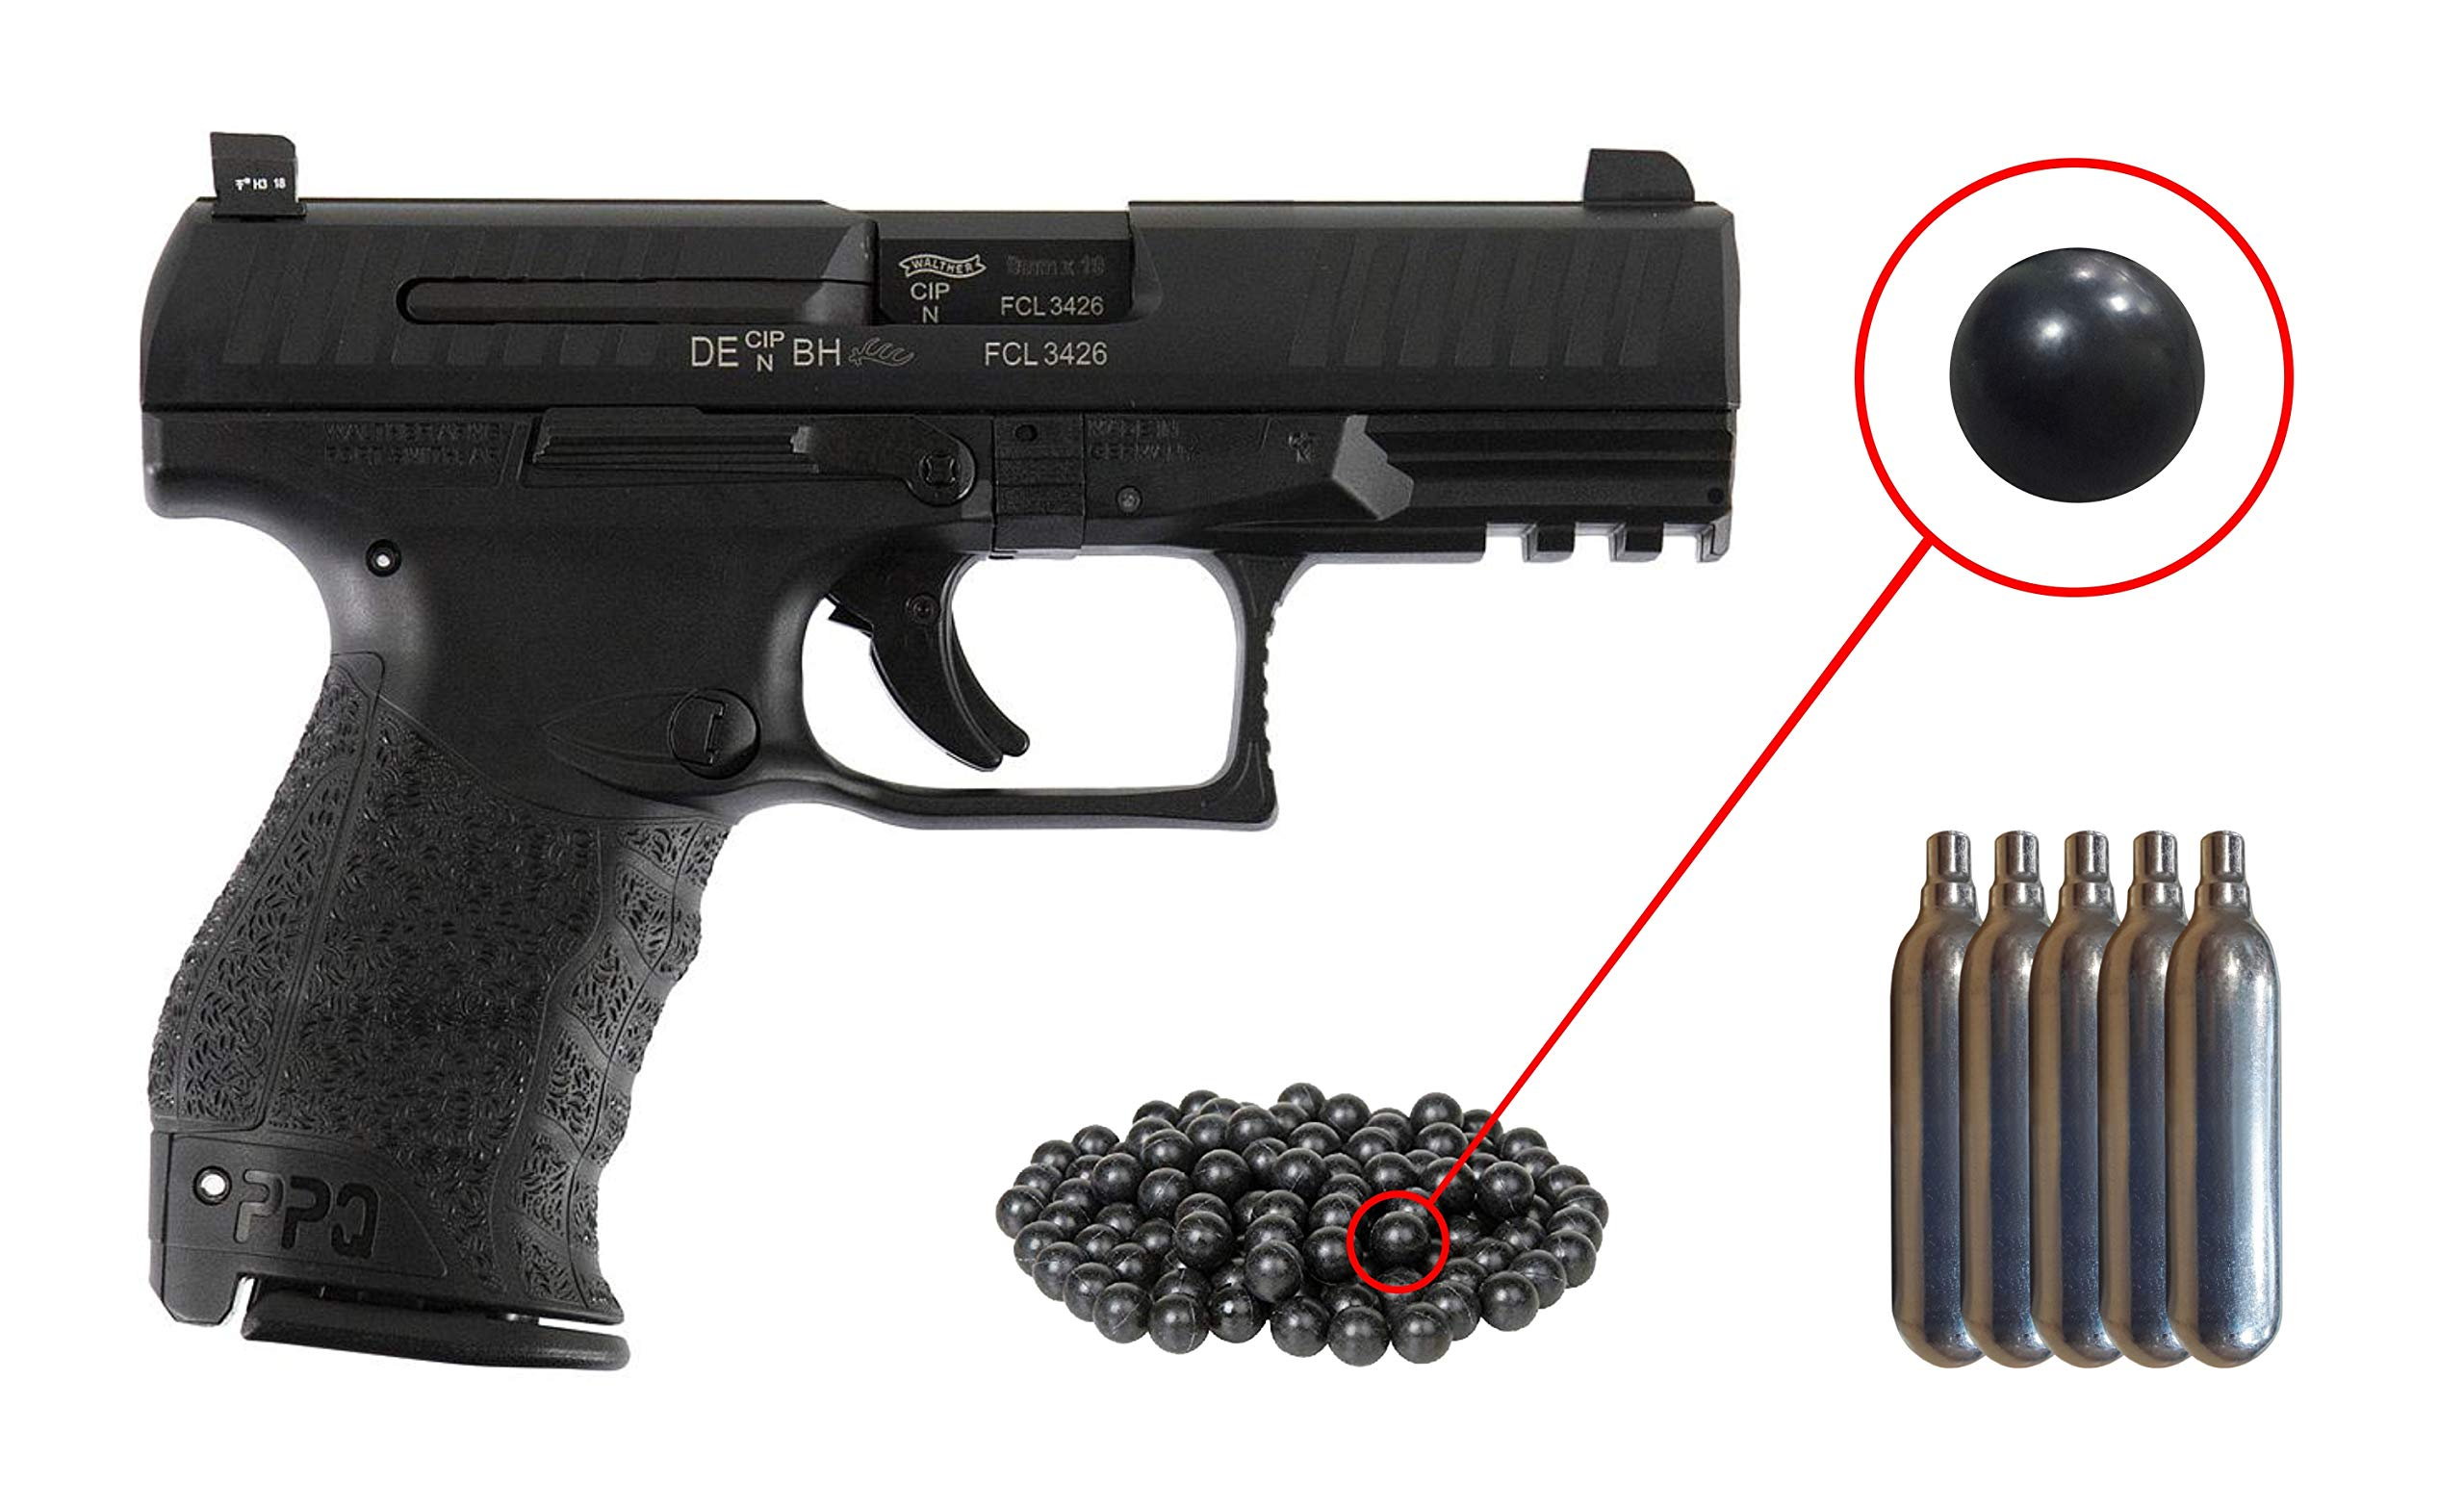 T4E .43cal Walther PPQ LE Paintball Pistol Law Enforcement Trainer with Included 5x12 Gram CO2 Tanks and T4E Pack of 500 .43 Cal Reusable Rubber Balls Bundle (Black) by Wearable4u